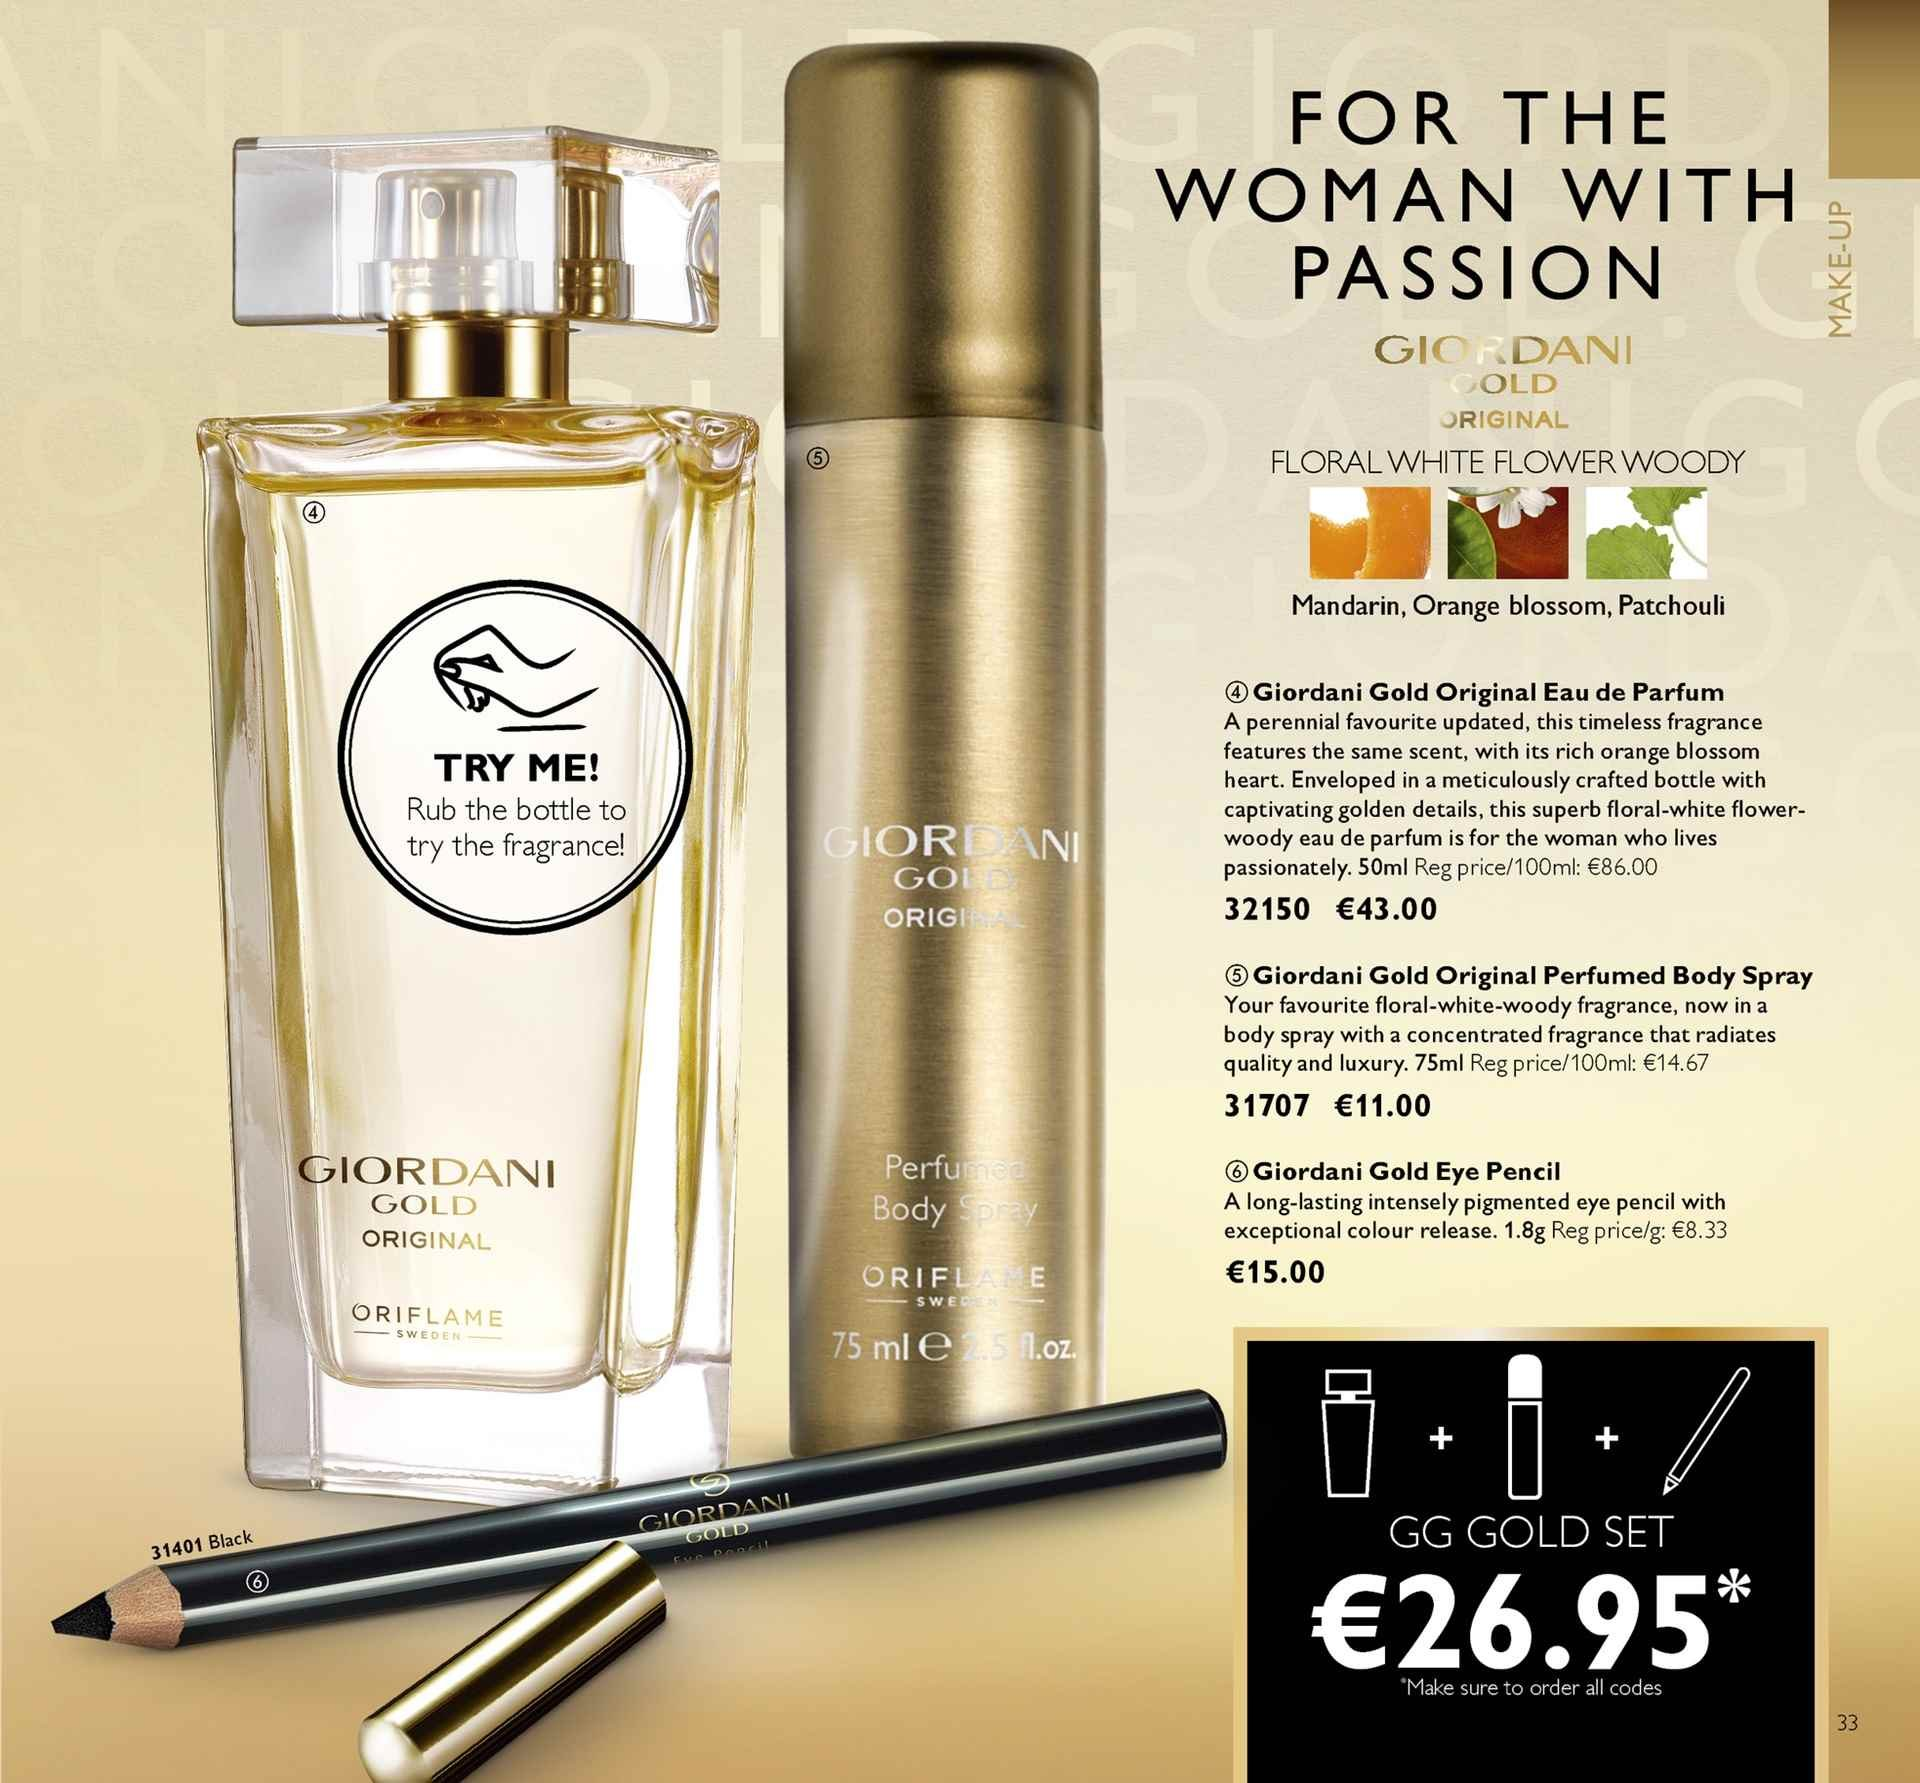 Oriflame offer  - 4.5.2018 - 24.5.2018 - Sales products - body spray, Giordani Gold, eau de parfum, fragrance, orange. Page 33.